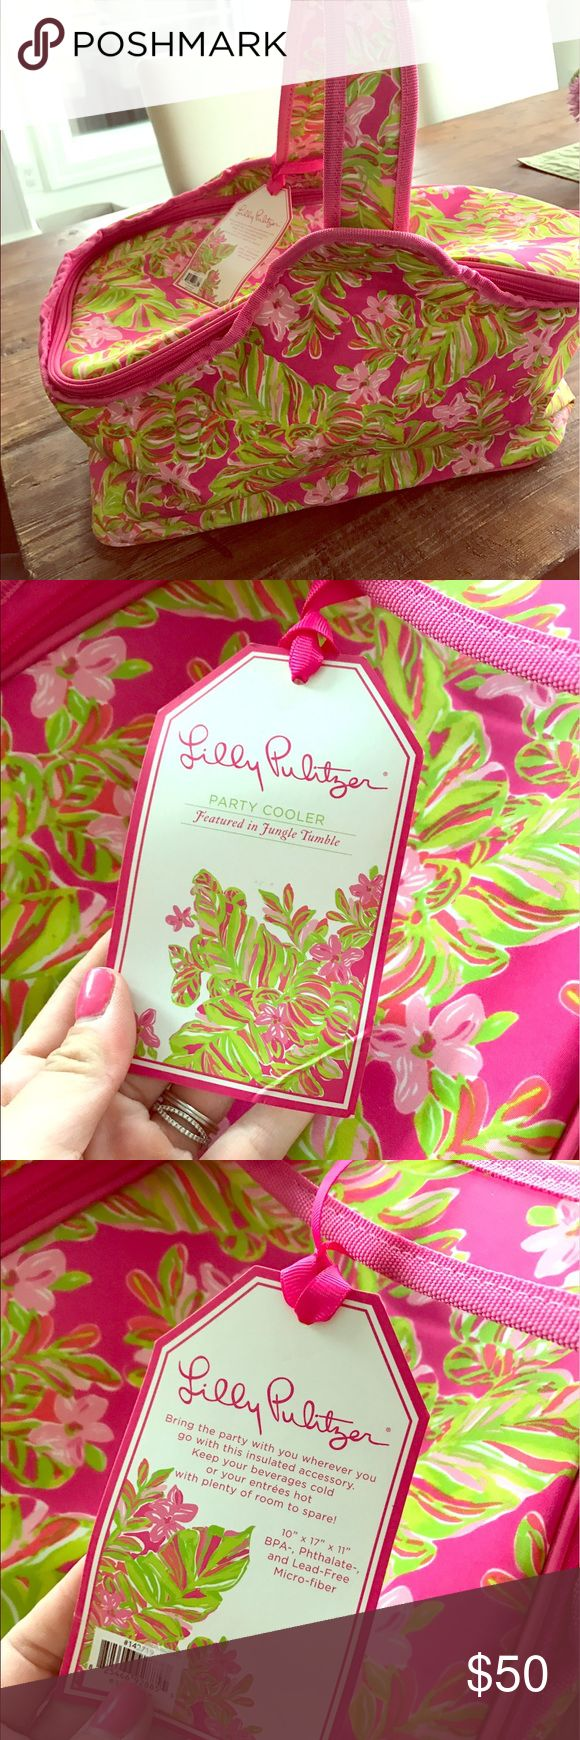 NWT Lily Pulitzer Cooler bag NWT Lily Pulitzer cooler. Perfect for summer!! Bags